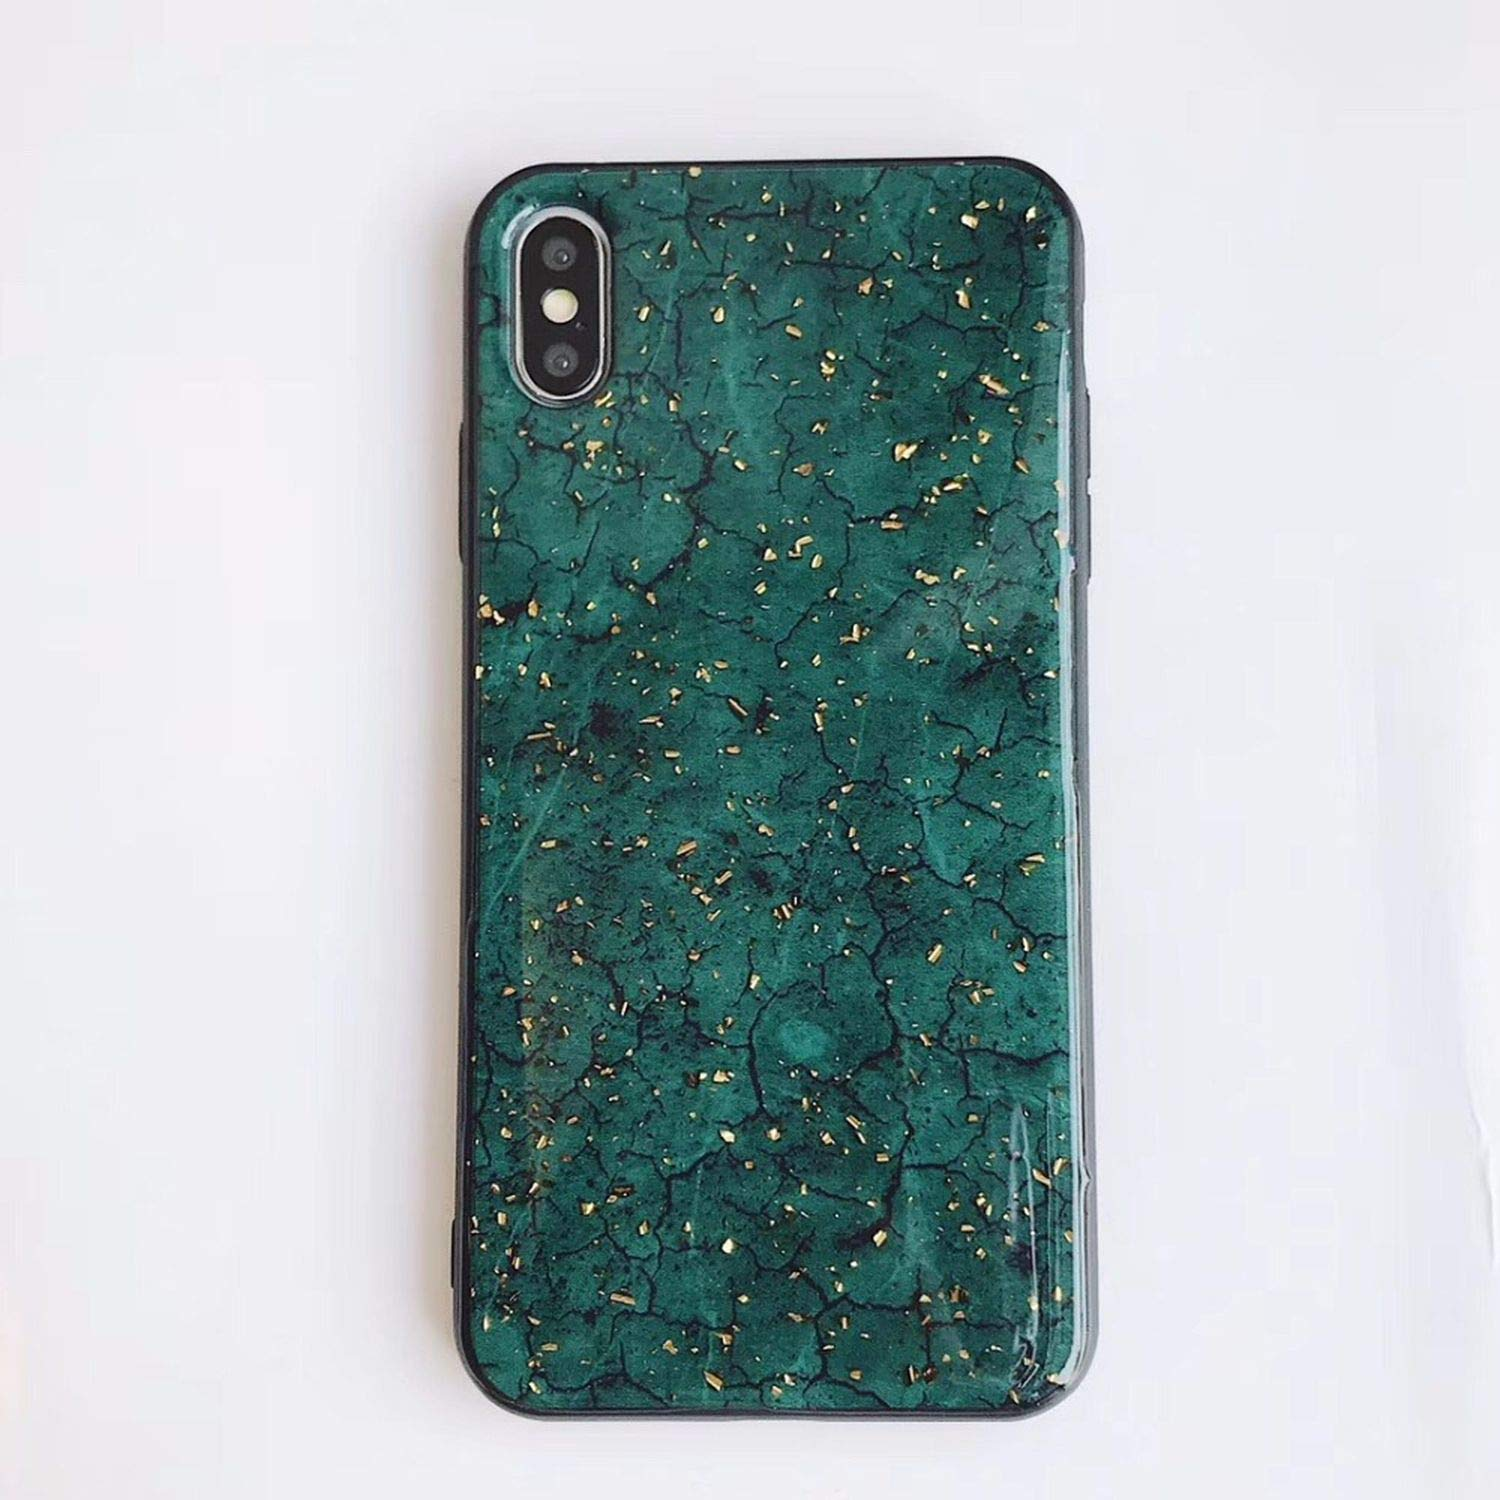 The Most Fashionable Purple Green Marble Crack Glitter Silicon Case for  iPhone 7 case Bling Soft TPU Case for iPhone 6 6s 7 8 Plus X XR XS Max case de9e5fa6d2ad5